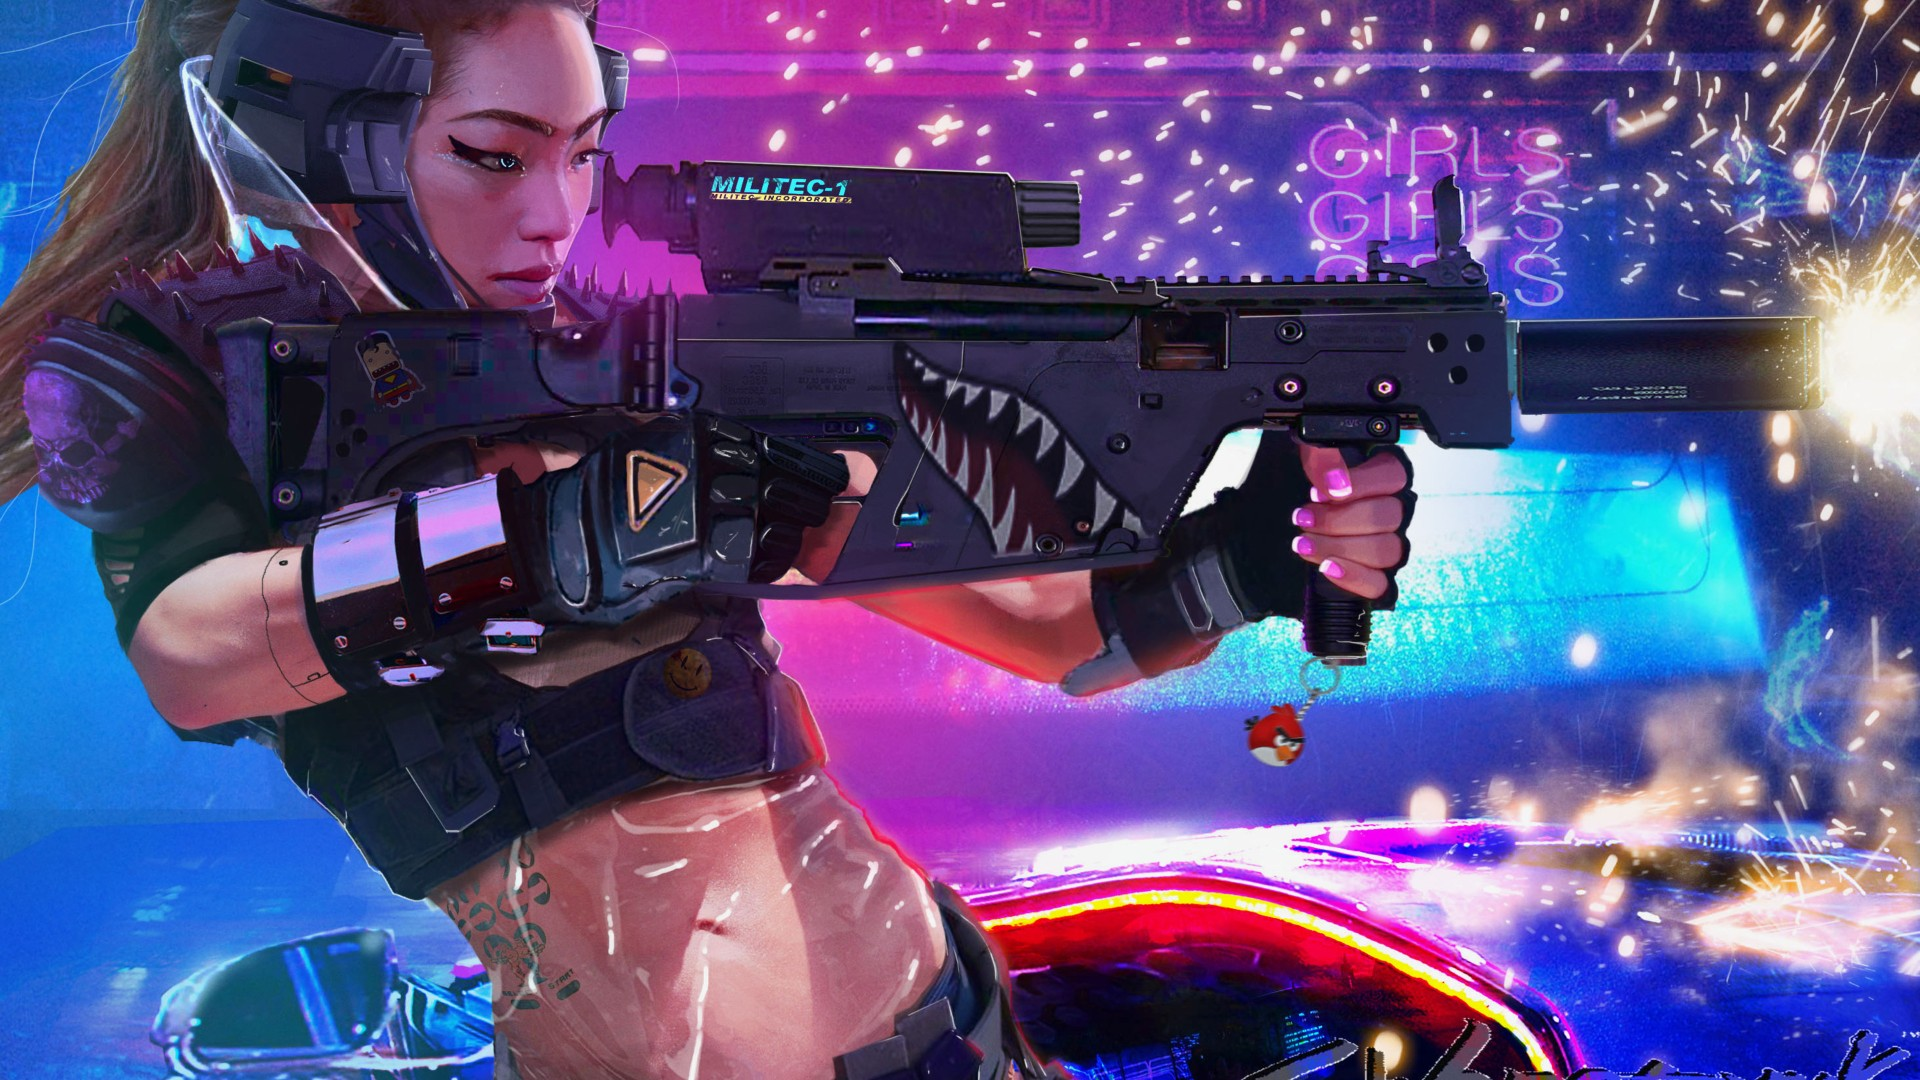 Cyberpunk 2077 1920x1080 1080p Wallpaper The Hot Desktop Wallpapers And Backgrounds For Your Pc And Mobile